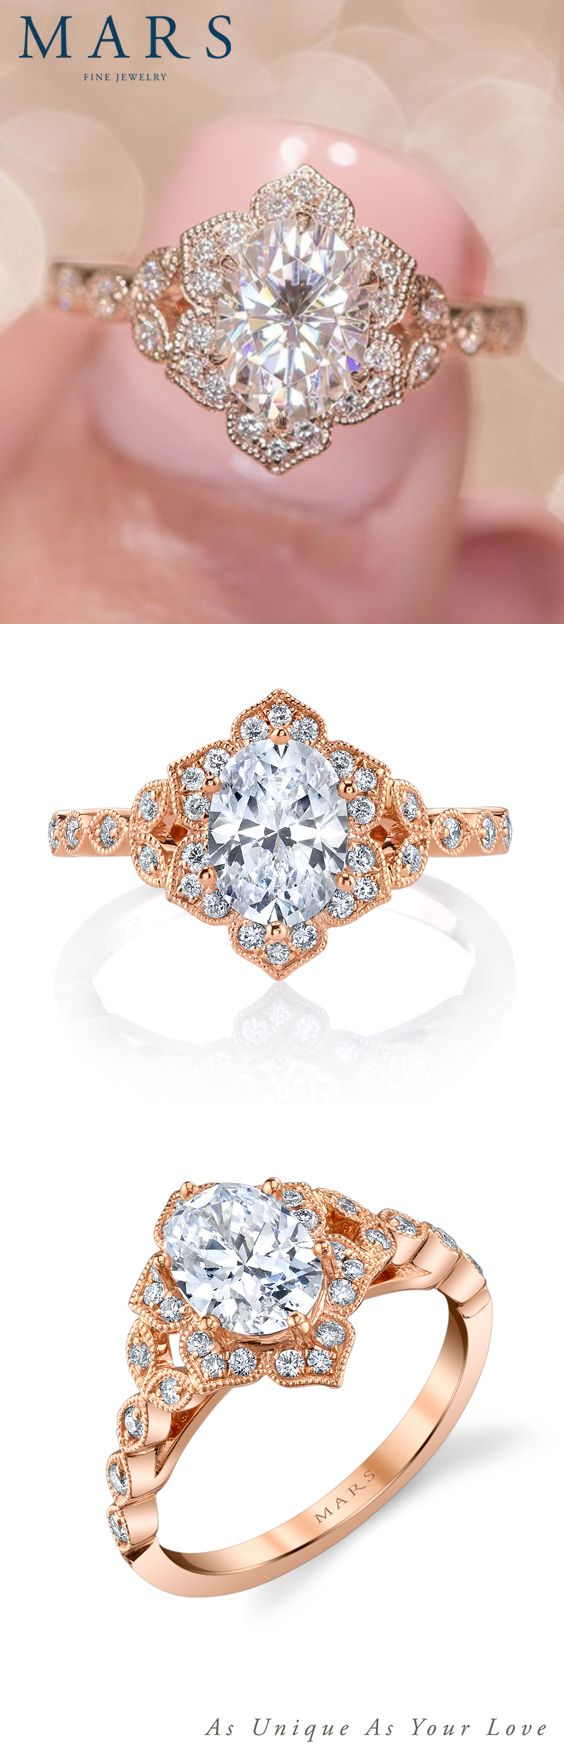 A floral motif engagement ring with a petal halo and scalloped diamond shank. Shown in Rose Gold with 1.00 Carat Oval center stone; center stone excluded from price. Side Stones: 0.23 Carat Weight Total. MSRP starting at $1205.00